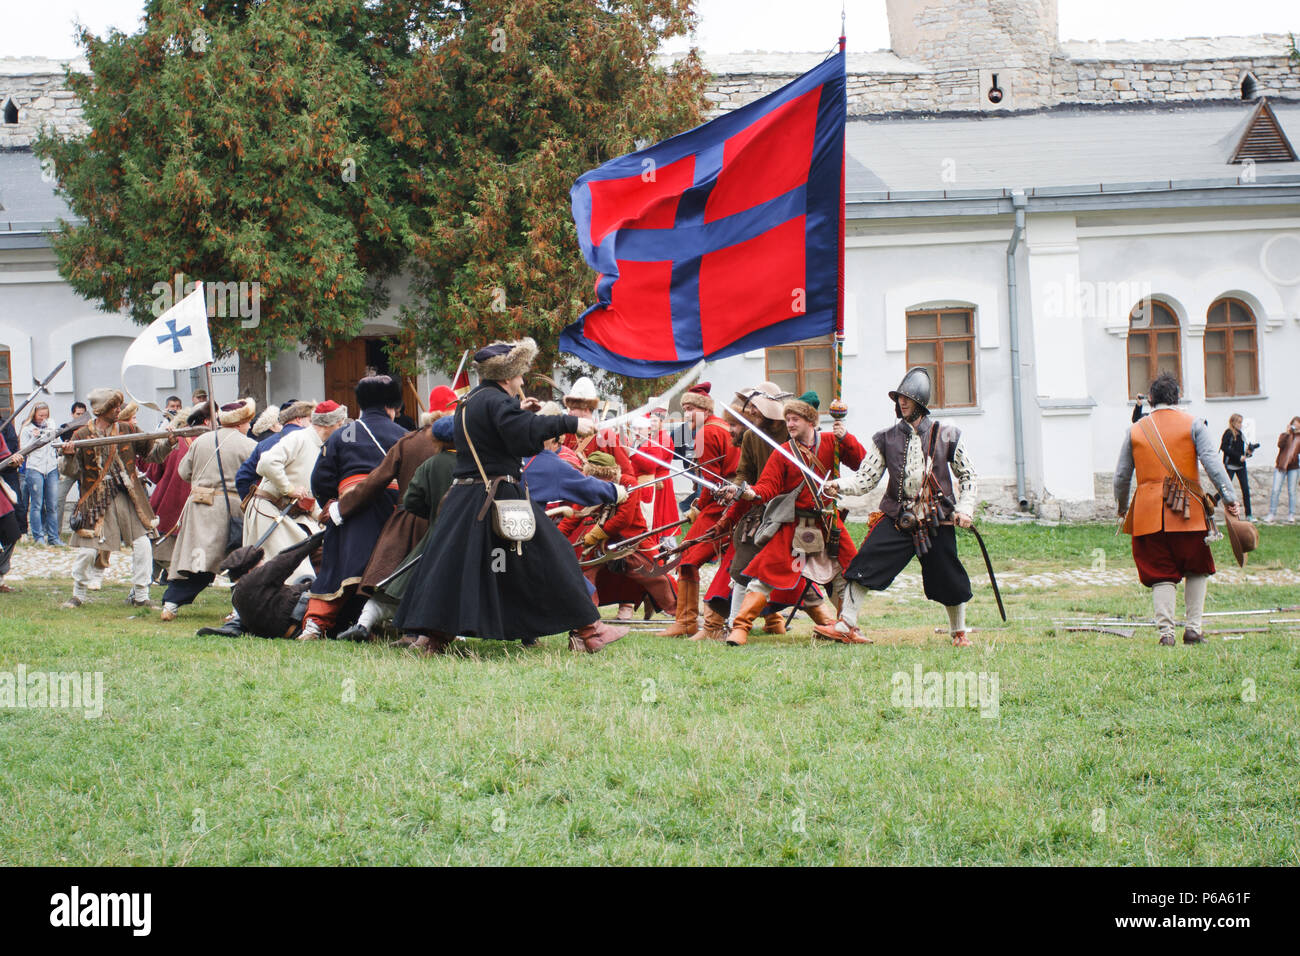 KAMYANETS-PODILSKY, UKRAINE - SEPTEMBER 26, 2010: Members of history club wear historical uniform 17 century during historical reenactment - Stock Image